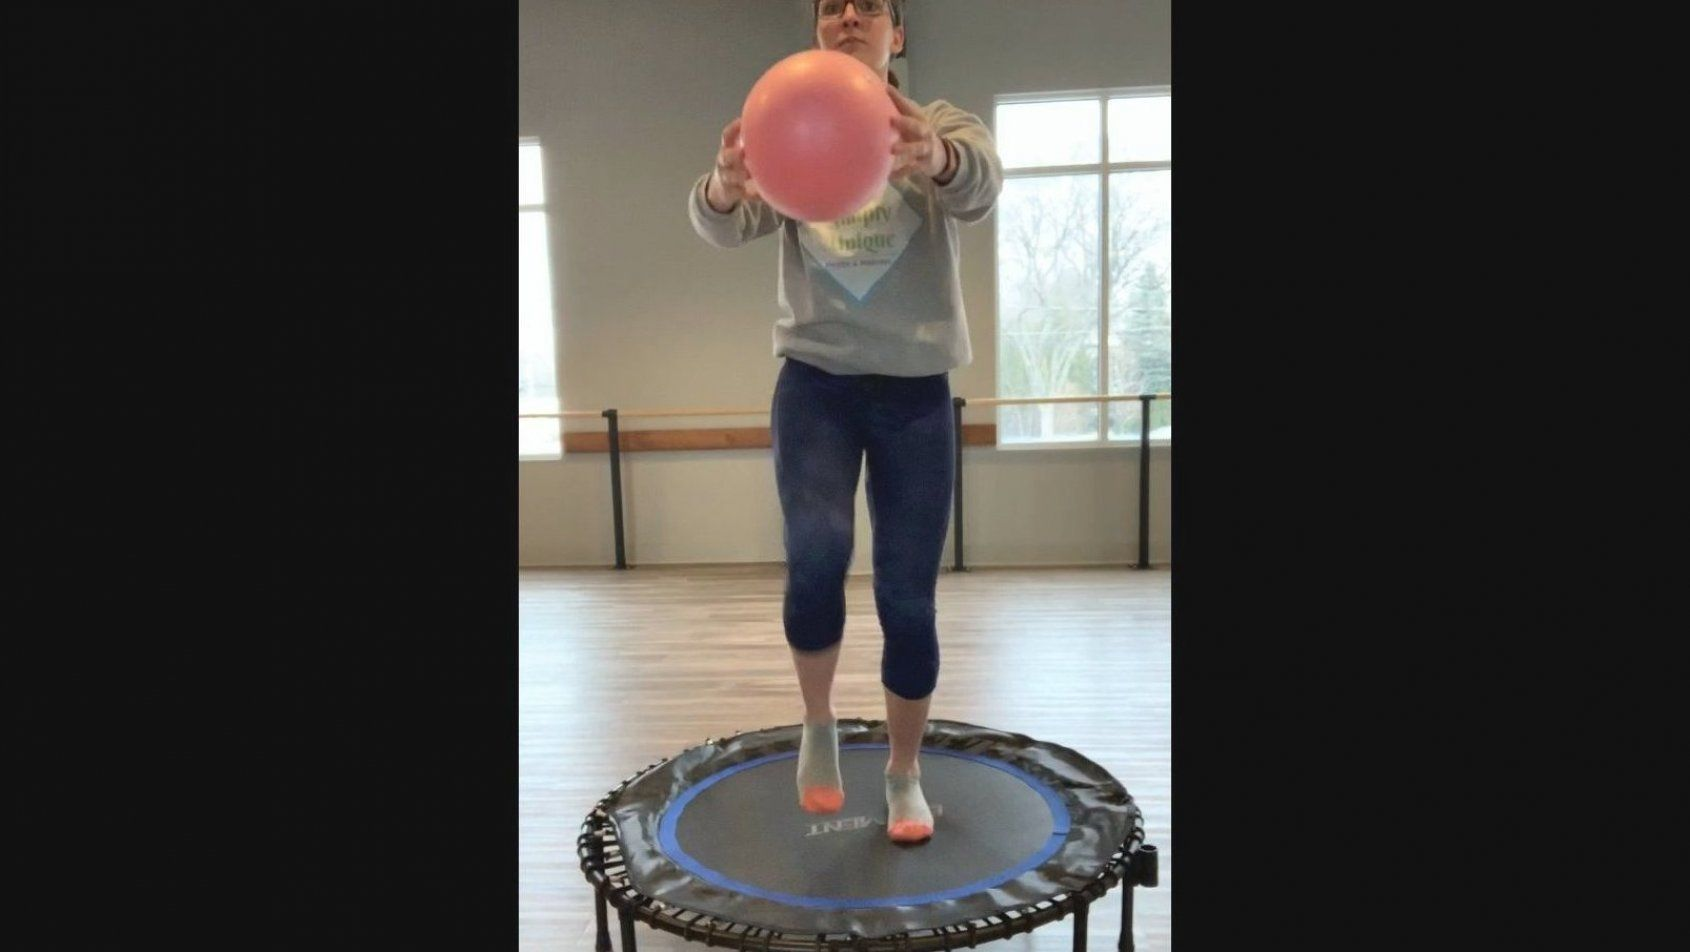 Barre Bounce fun Fun FUN  Bouncing on a trampoline is a great LOW impact HIGH cardio workout and ton...